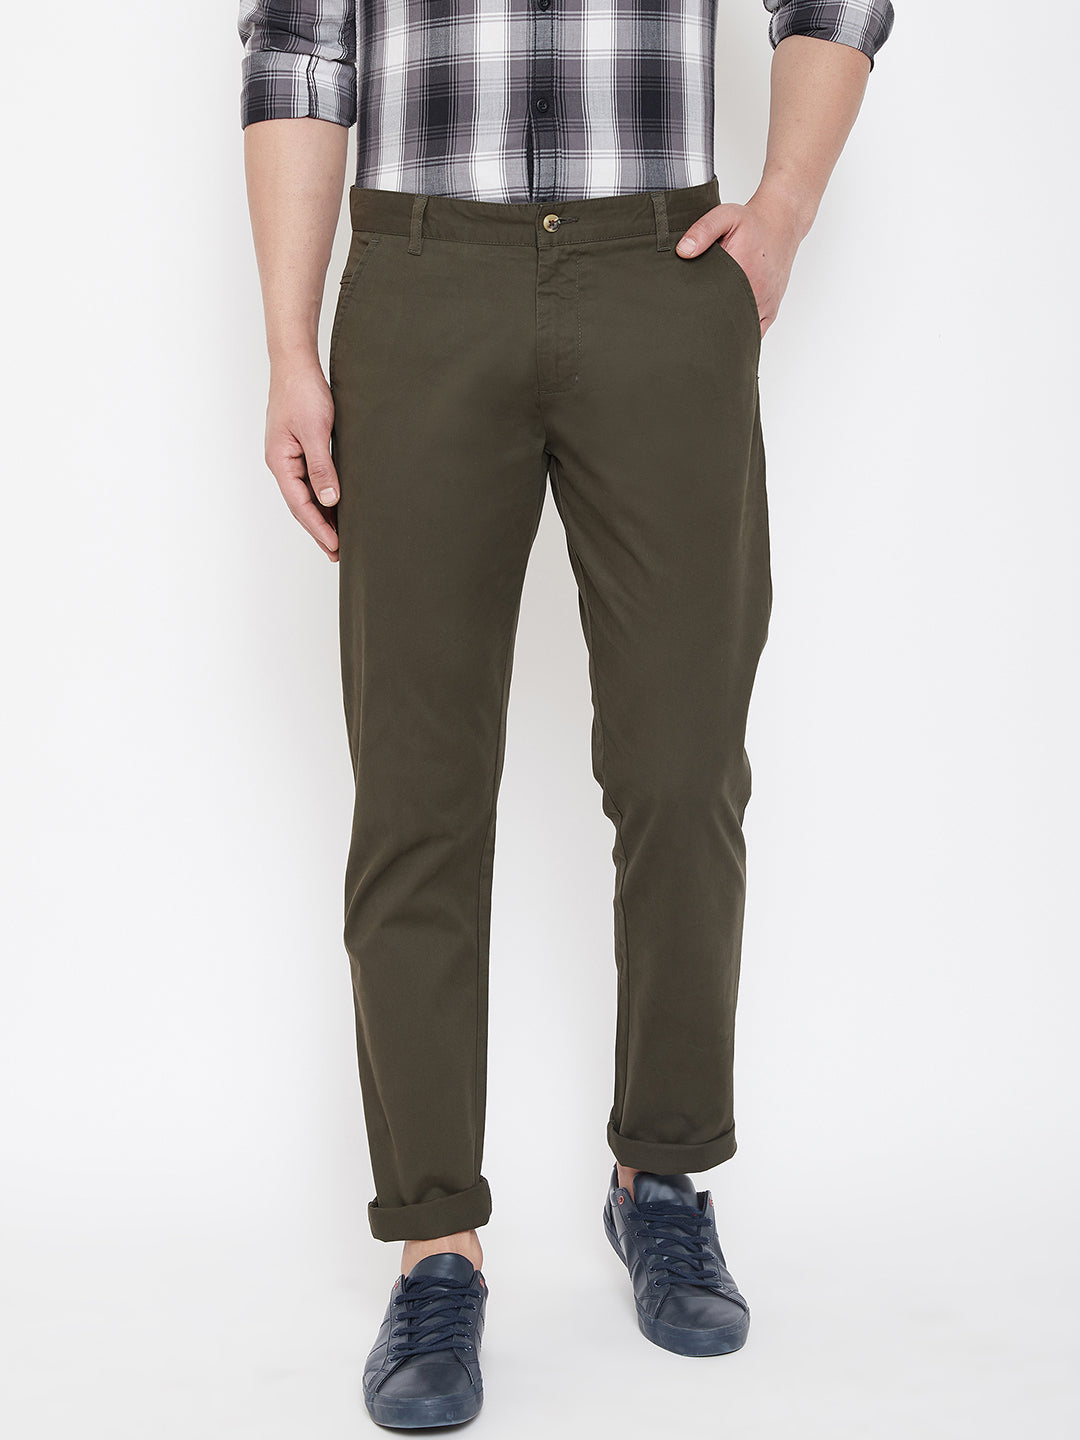 JUMP USA Men Olive Casual Regular Fit Trousers